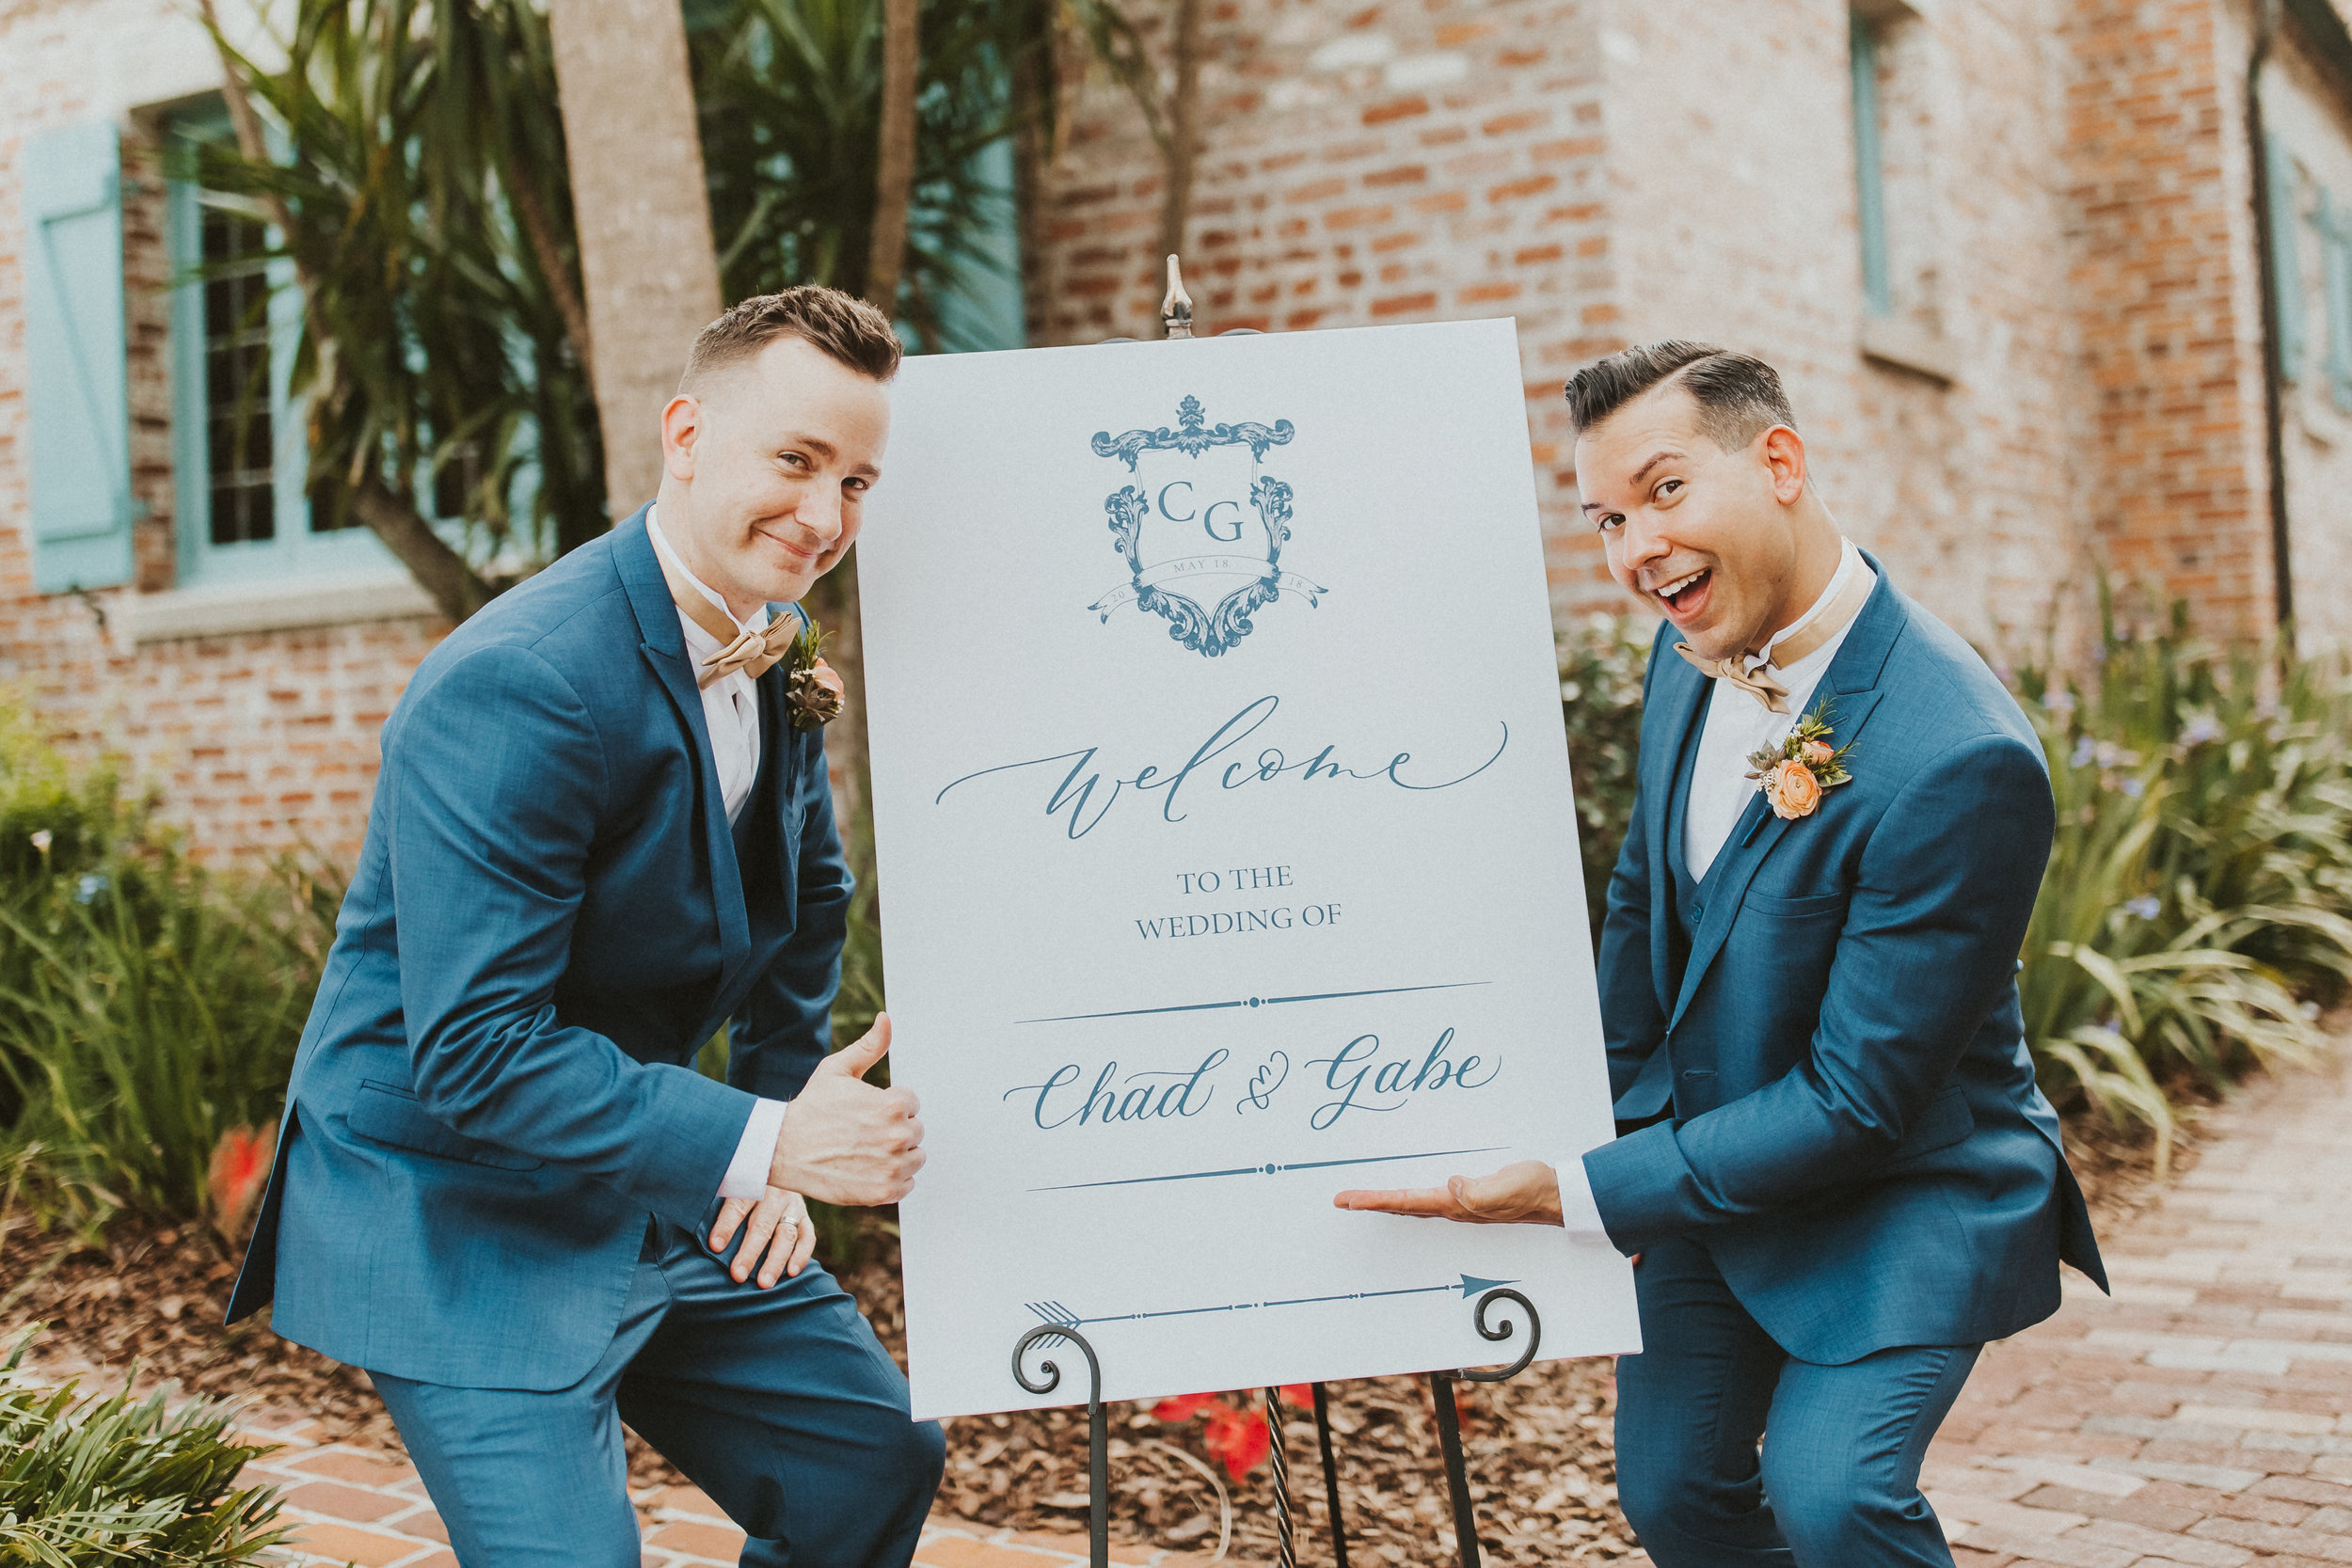 4. Groom Couples Portraits- Navy & Copper Casa Feliz Wedding of Gabe & Chad -43.jpg